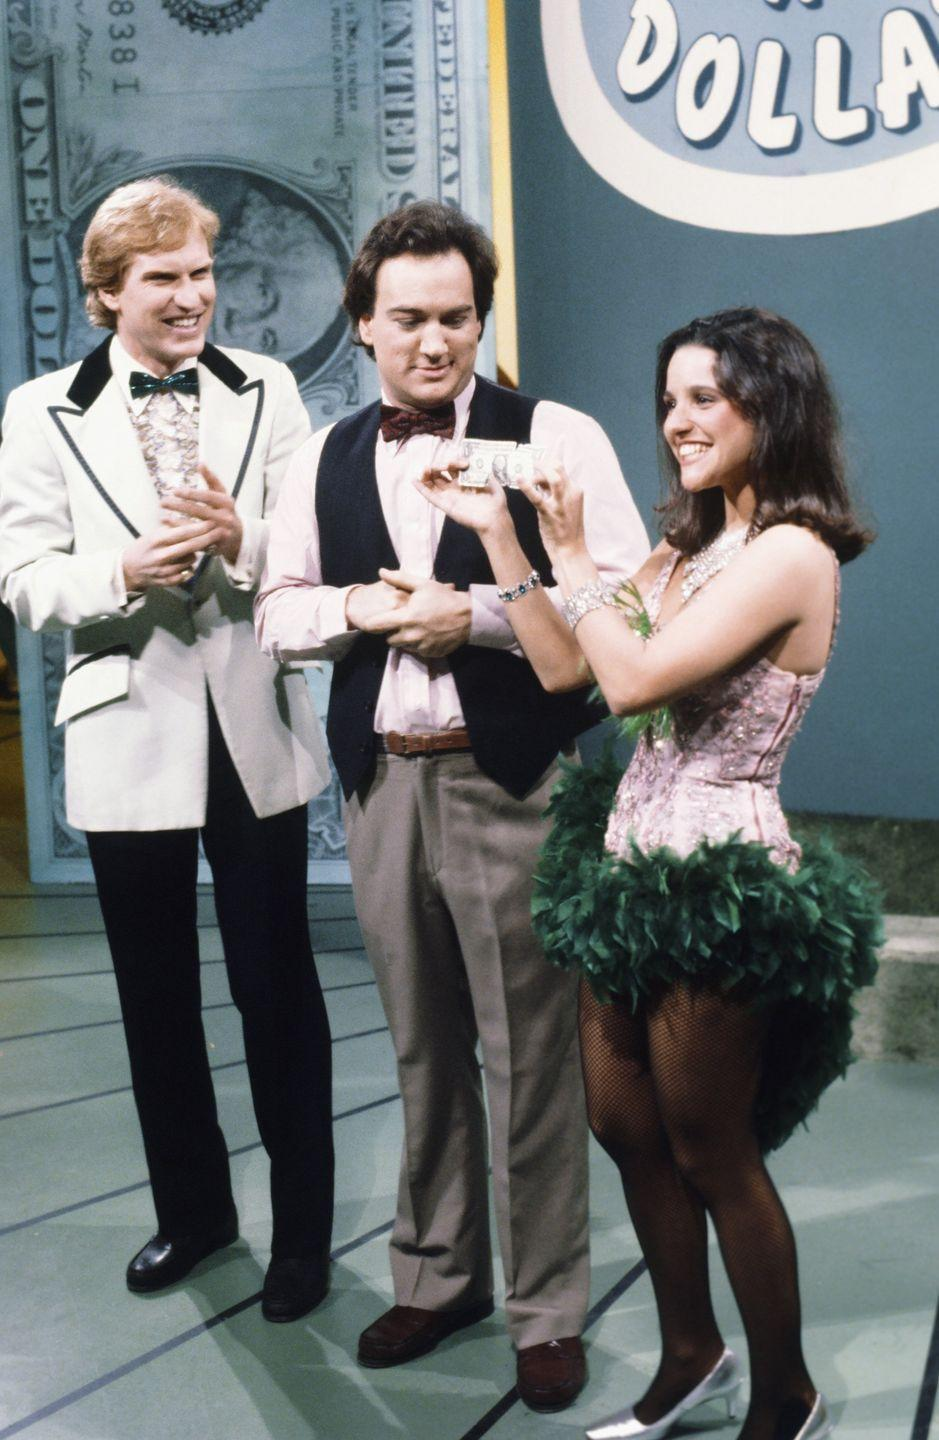 <p>As a cast member from 1982 to 1985, Julia Louis-Dreyfus lasted longer on <em>SNL</em> than most of the others on this list, but she's made no secret of the fact that the show's competitive, sexist atmosphere at the time made her miserable. </p>